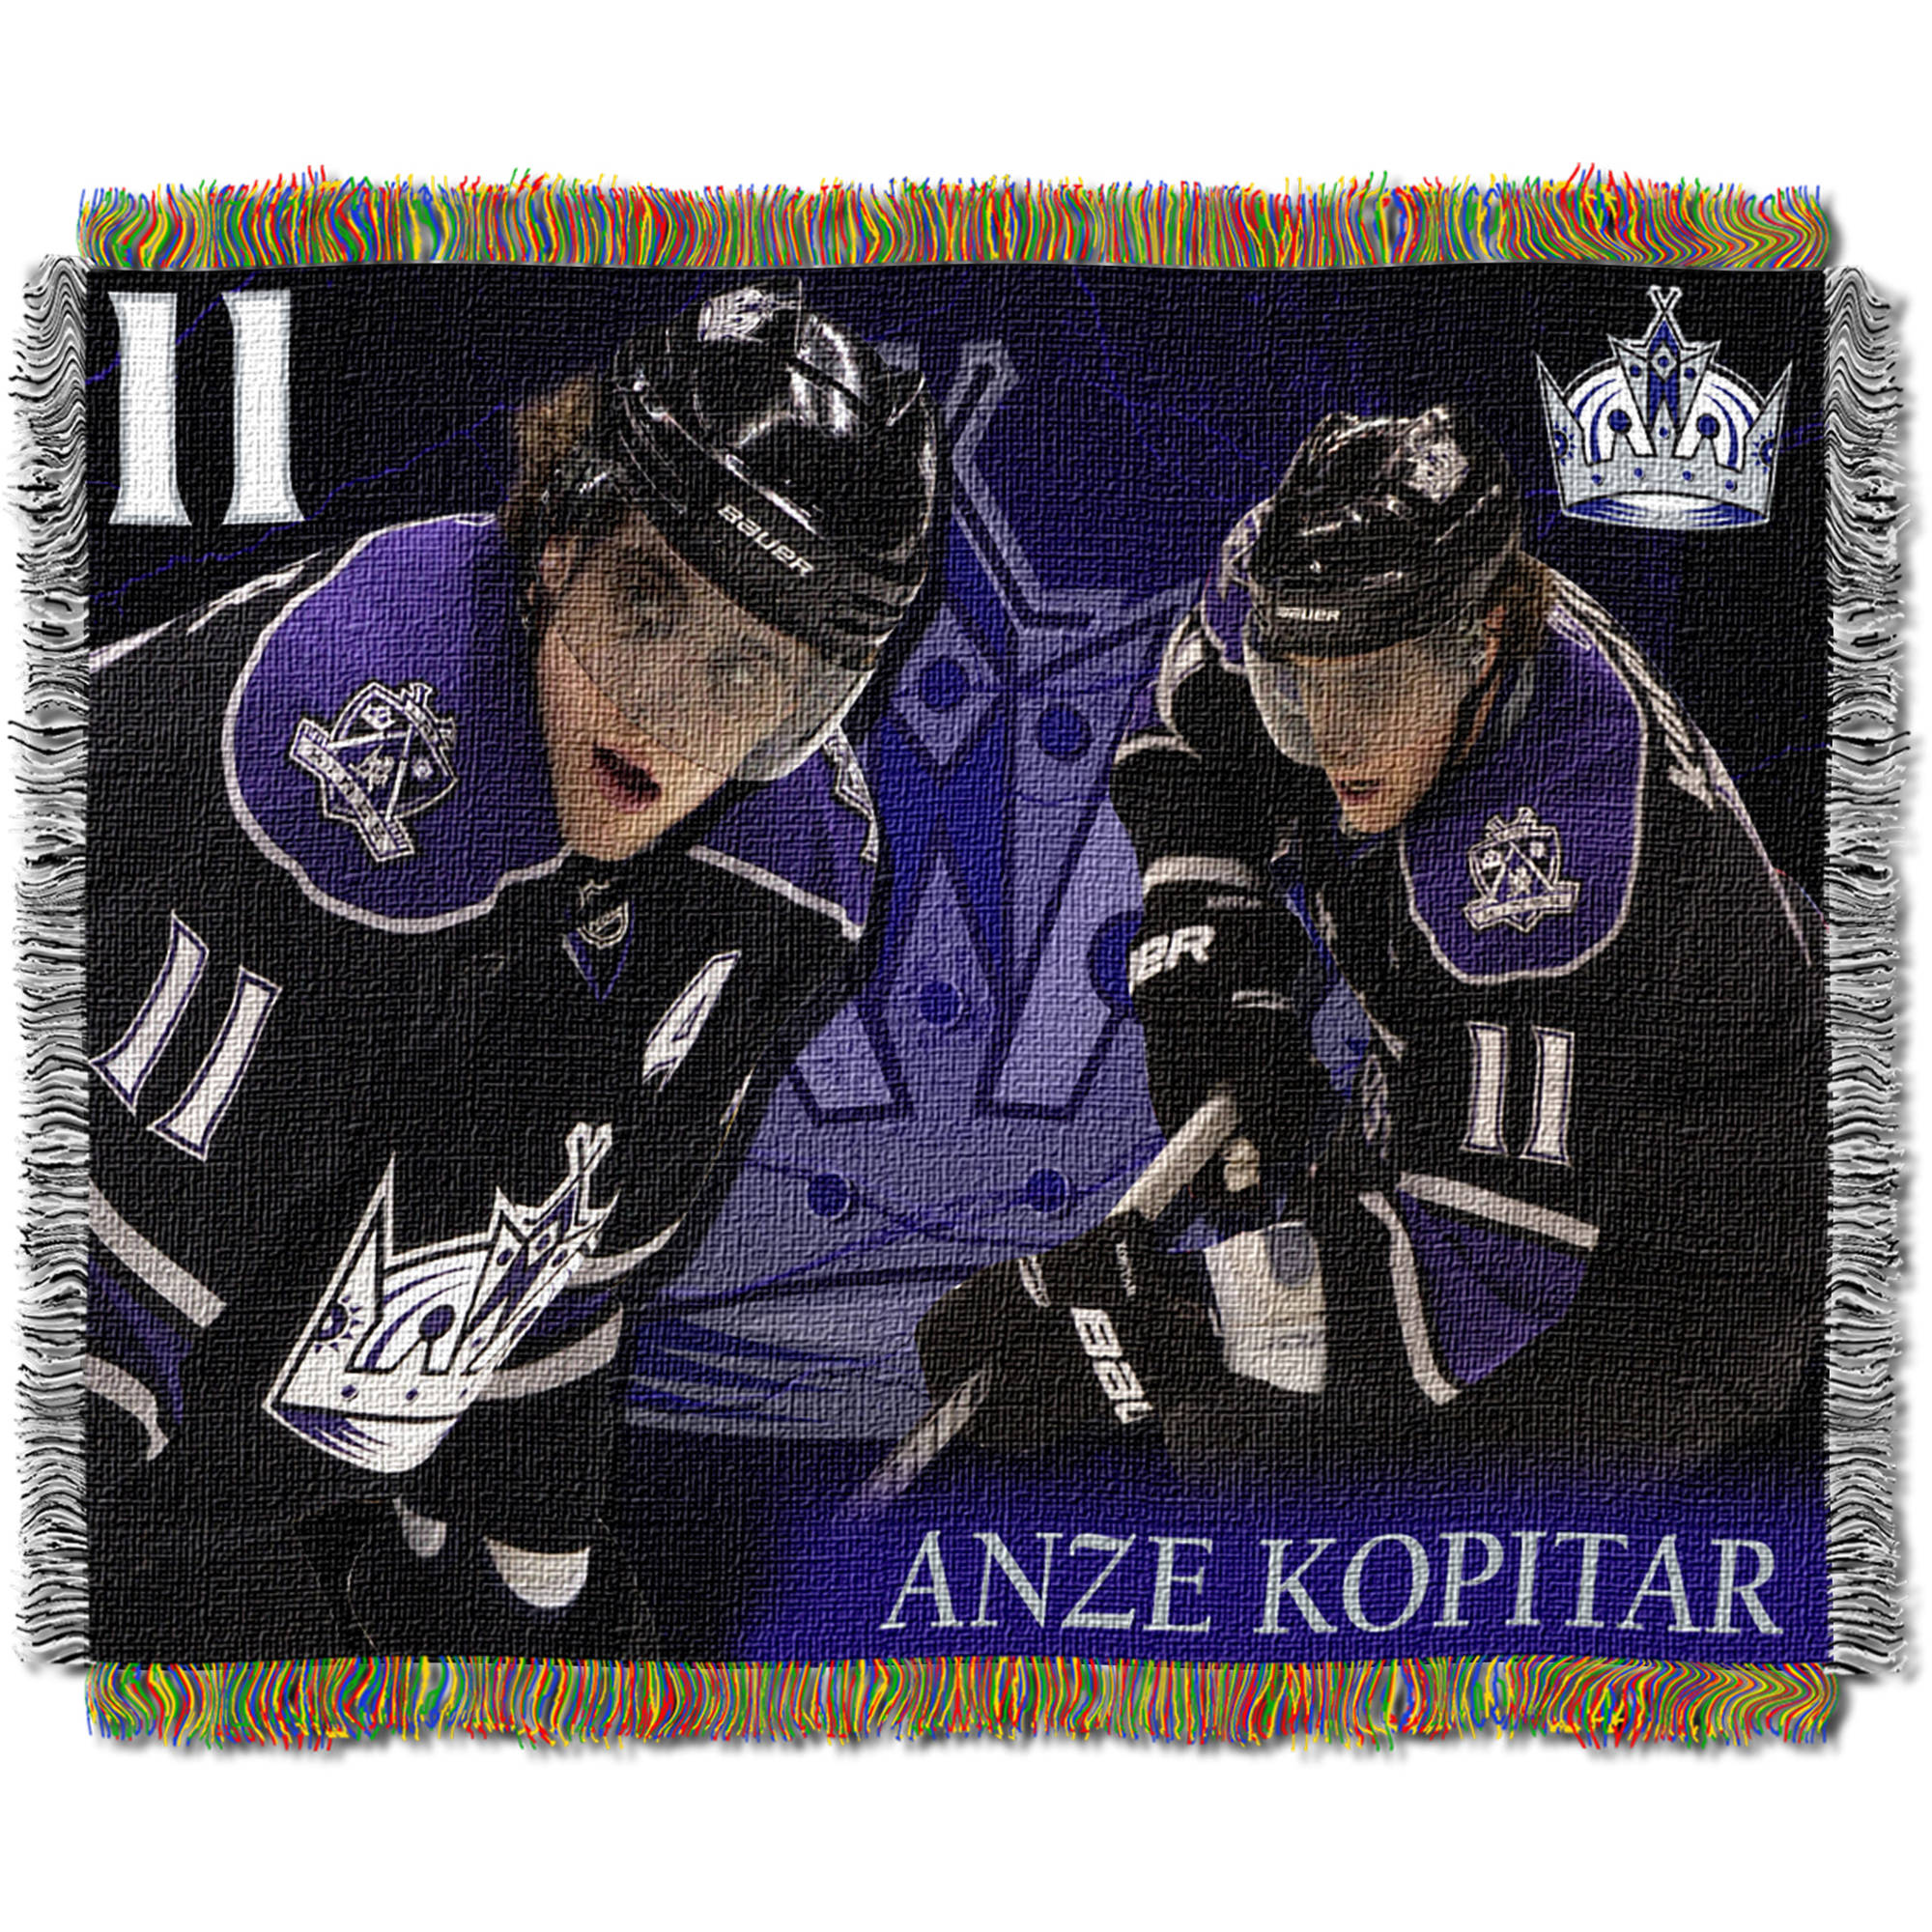 "NHL 48"" x 60"" Players Series Tapestry Throw, Anze Kopitar"